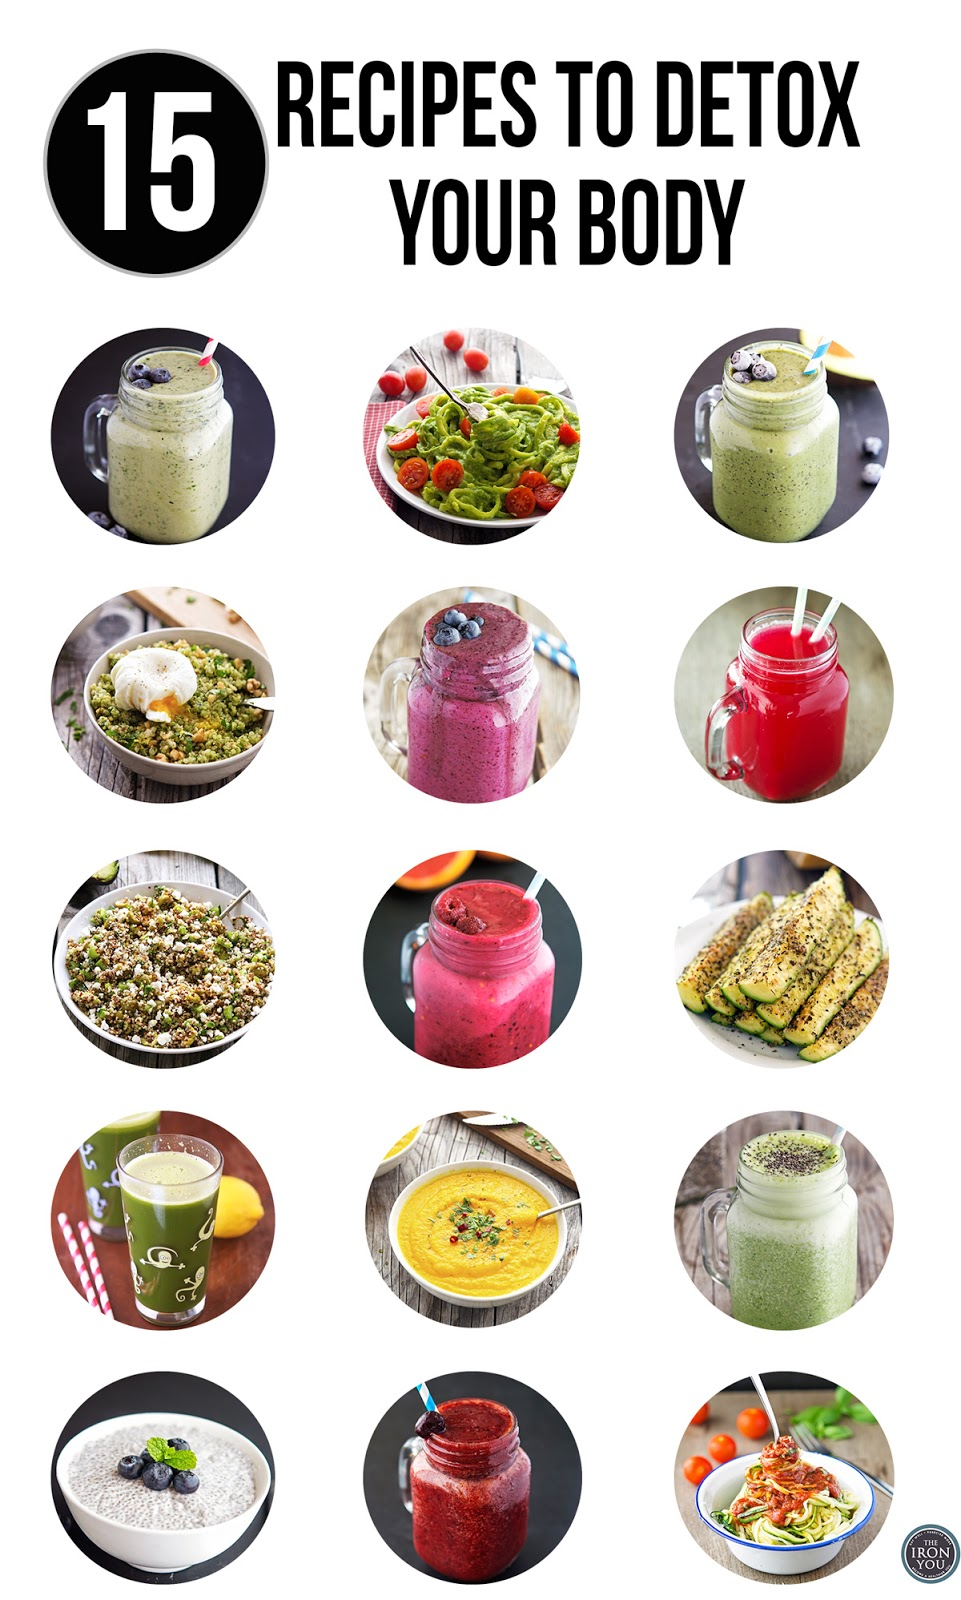 15 Recipes To Detox Your Body